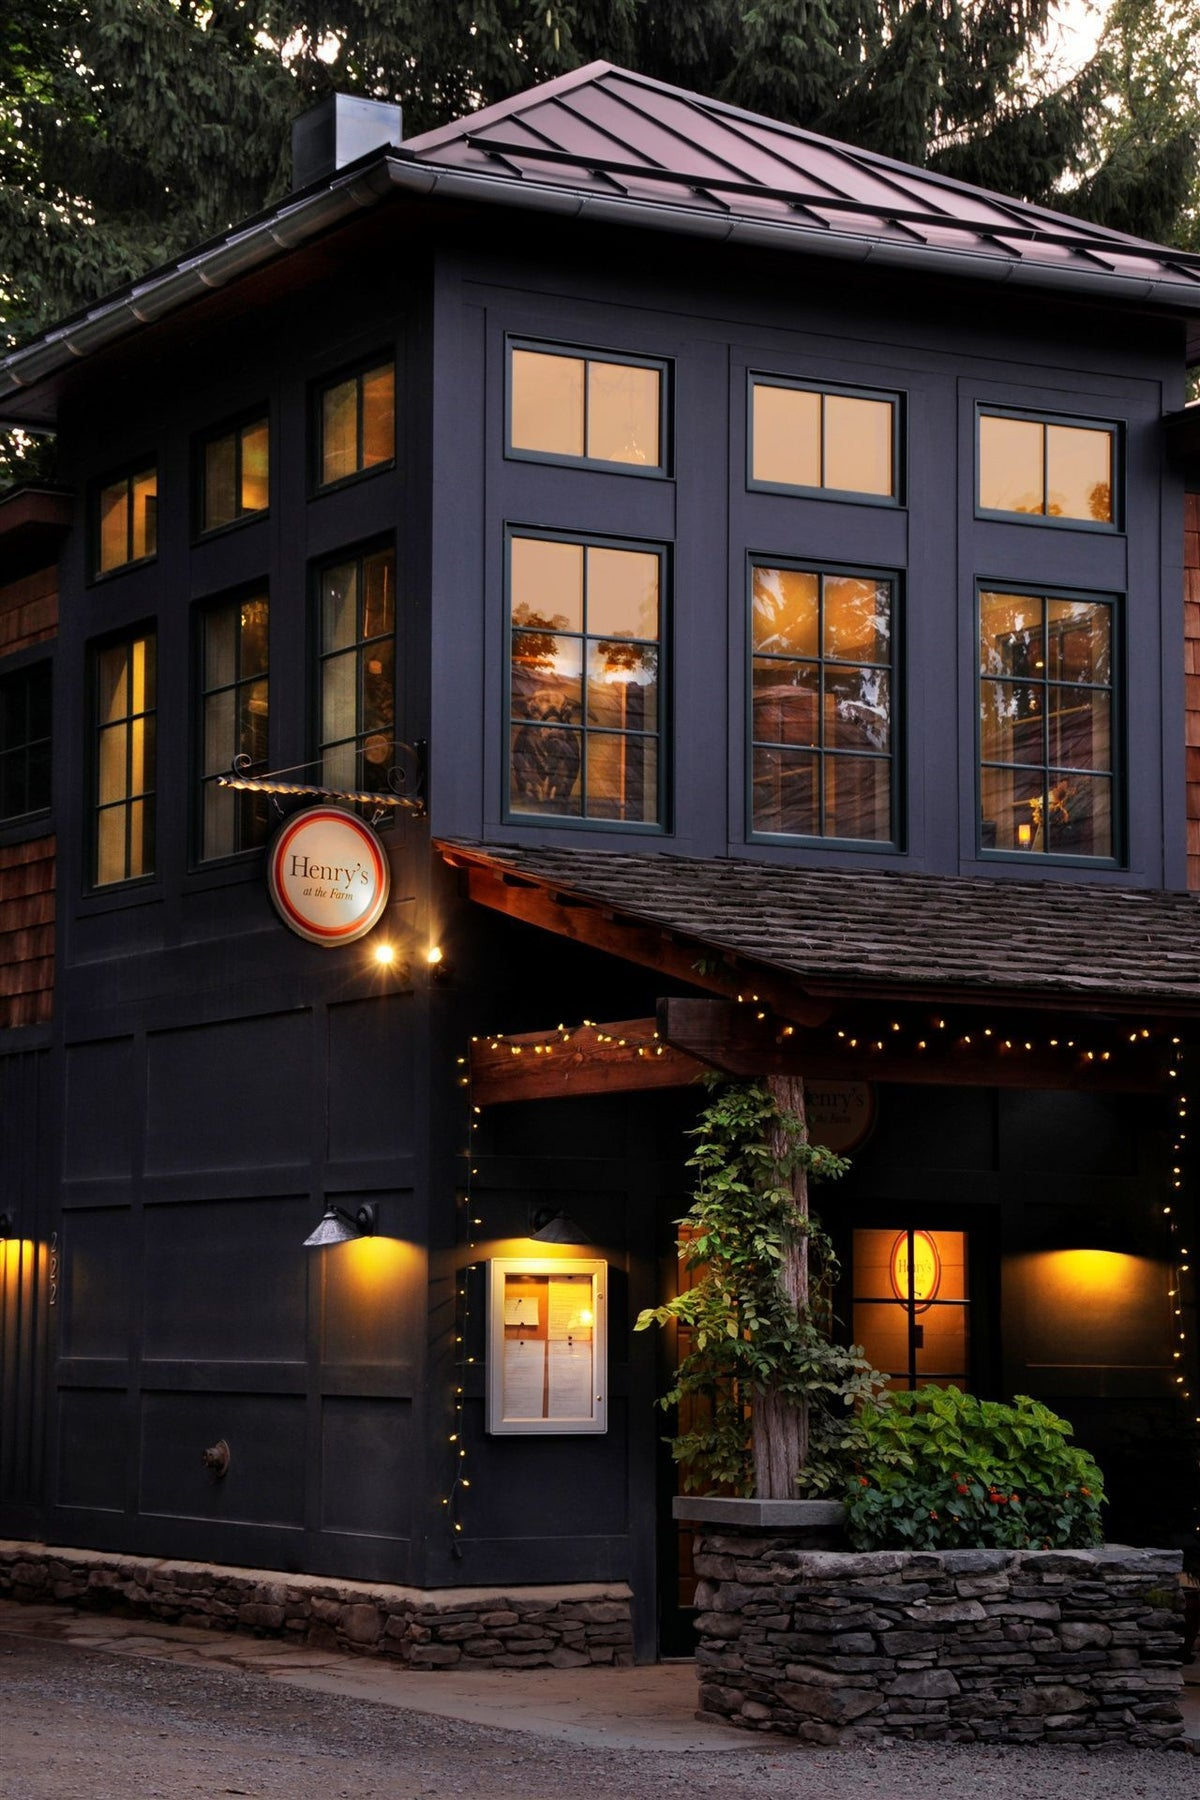 Buttermilk Falls Inn, NY - Henry's Restaurant, exterior of modern farmhouse at nighttime